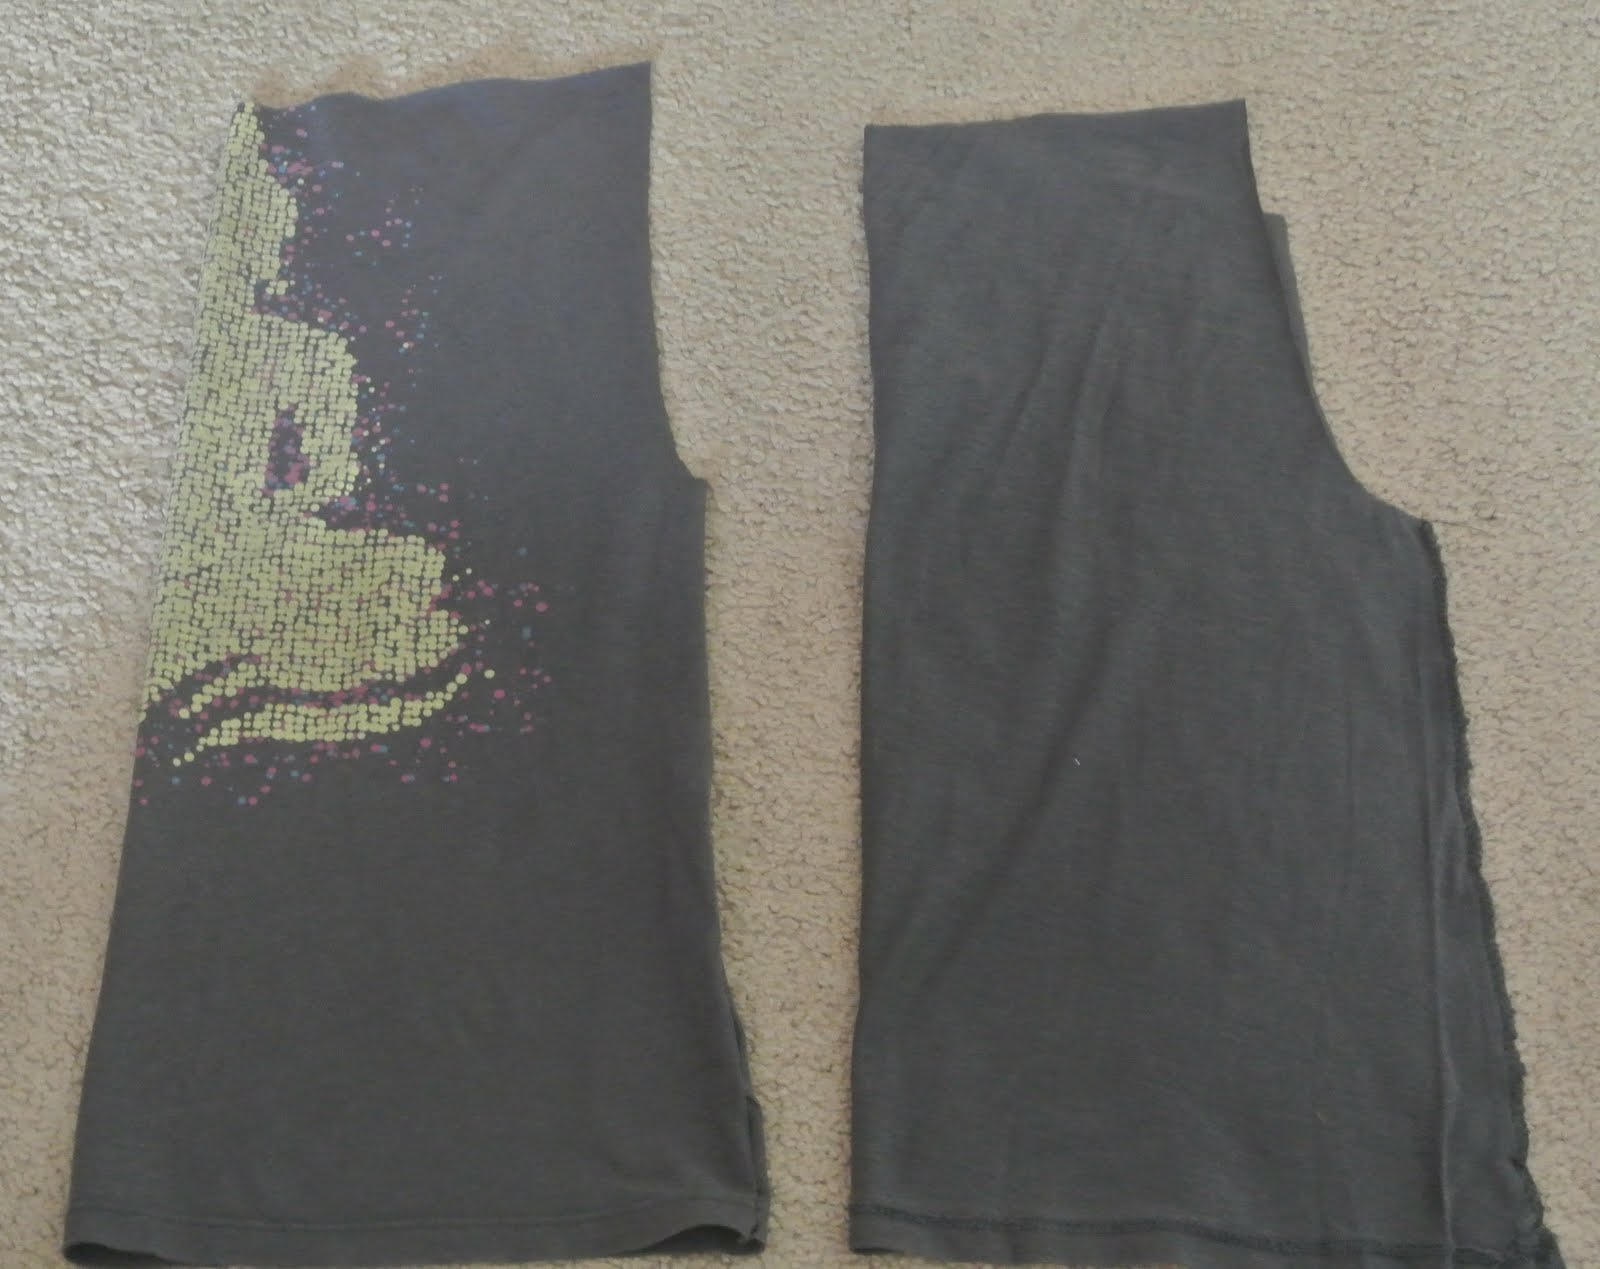 Ripped Yoga Pants Updated yoga pants from oldRipped Yoga Pants Gif